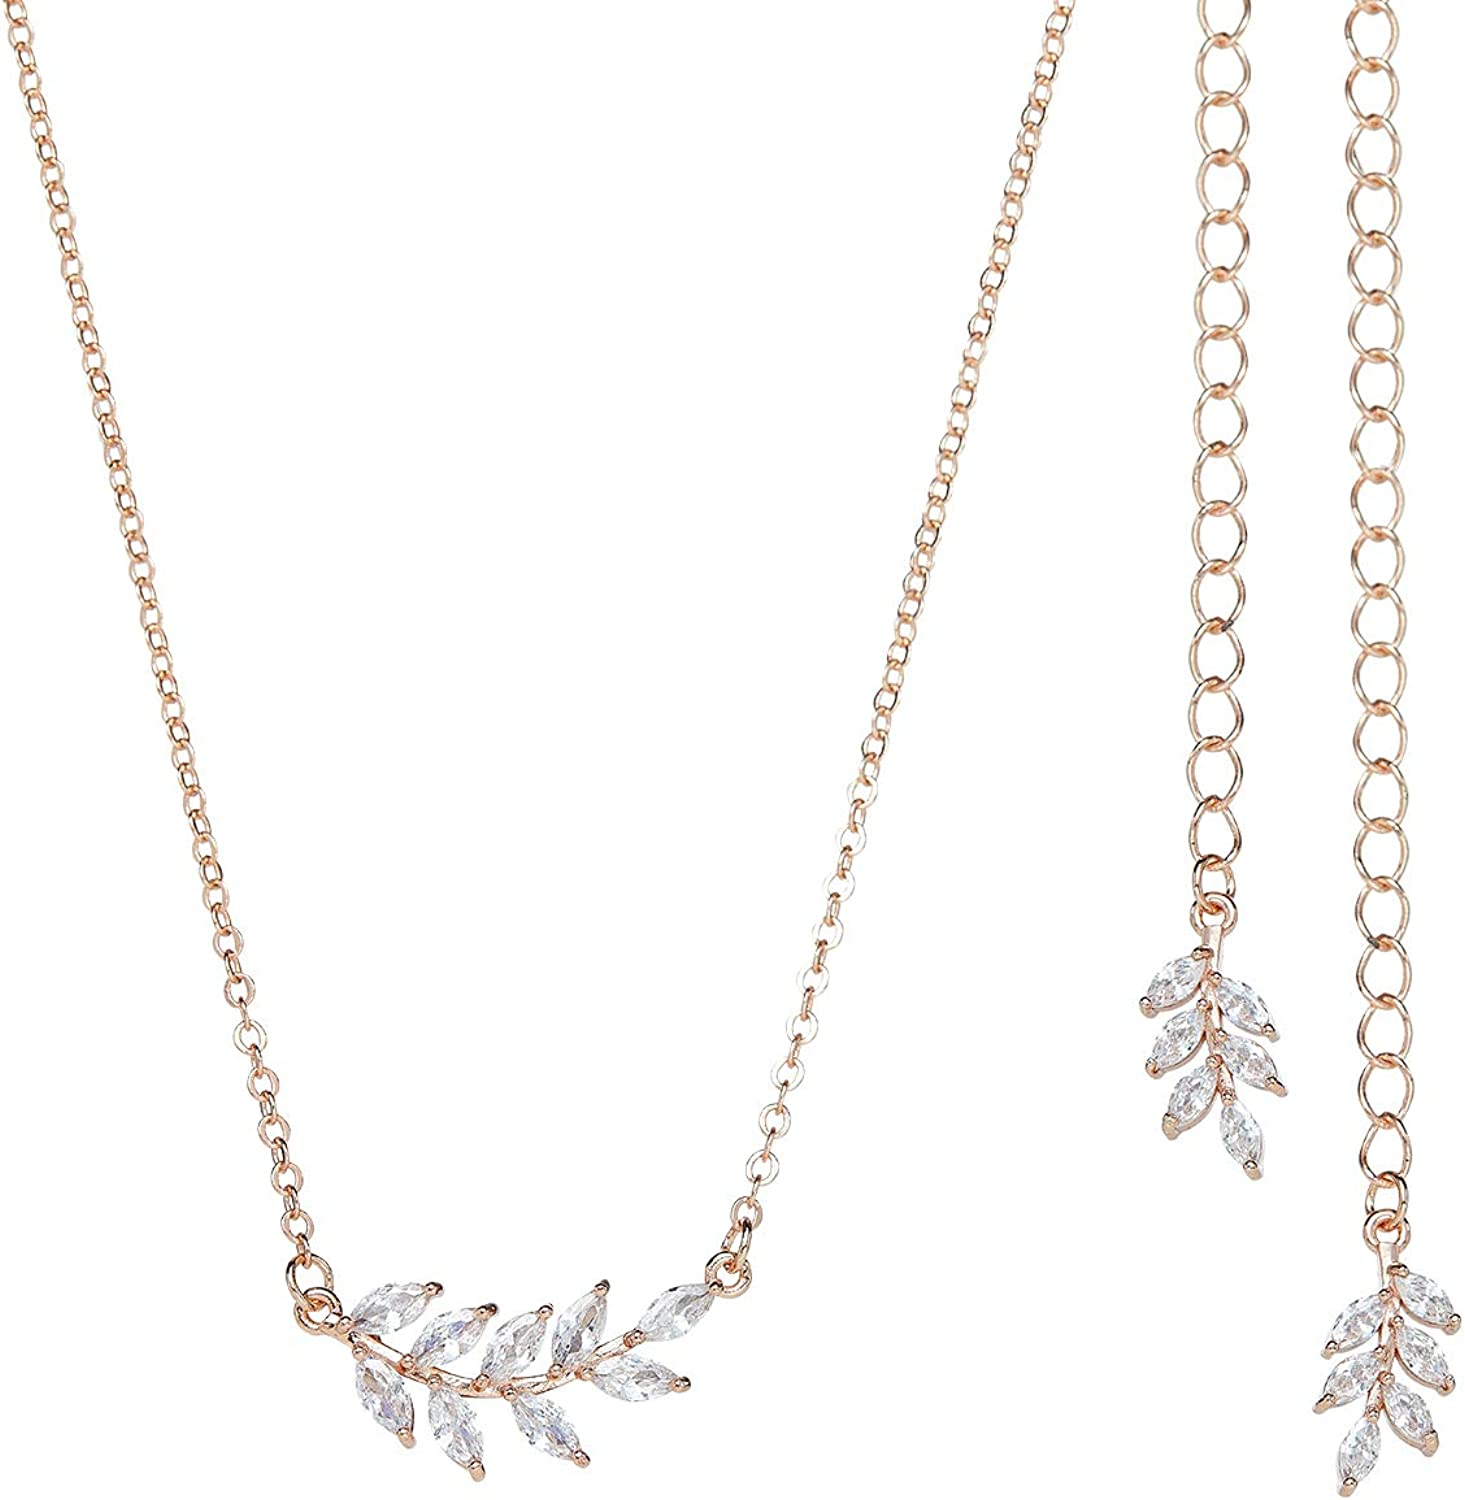 SWEETV Simple Wedding Back Necklace Brides for Brida Bridesmaid Lowest Limited time for free shipping price challenge